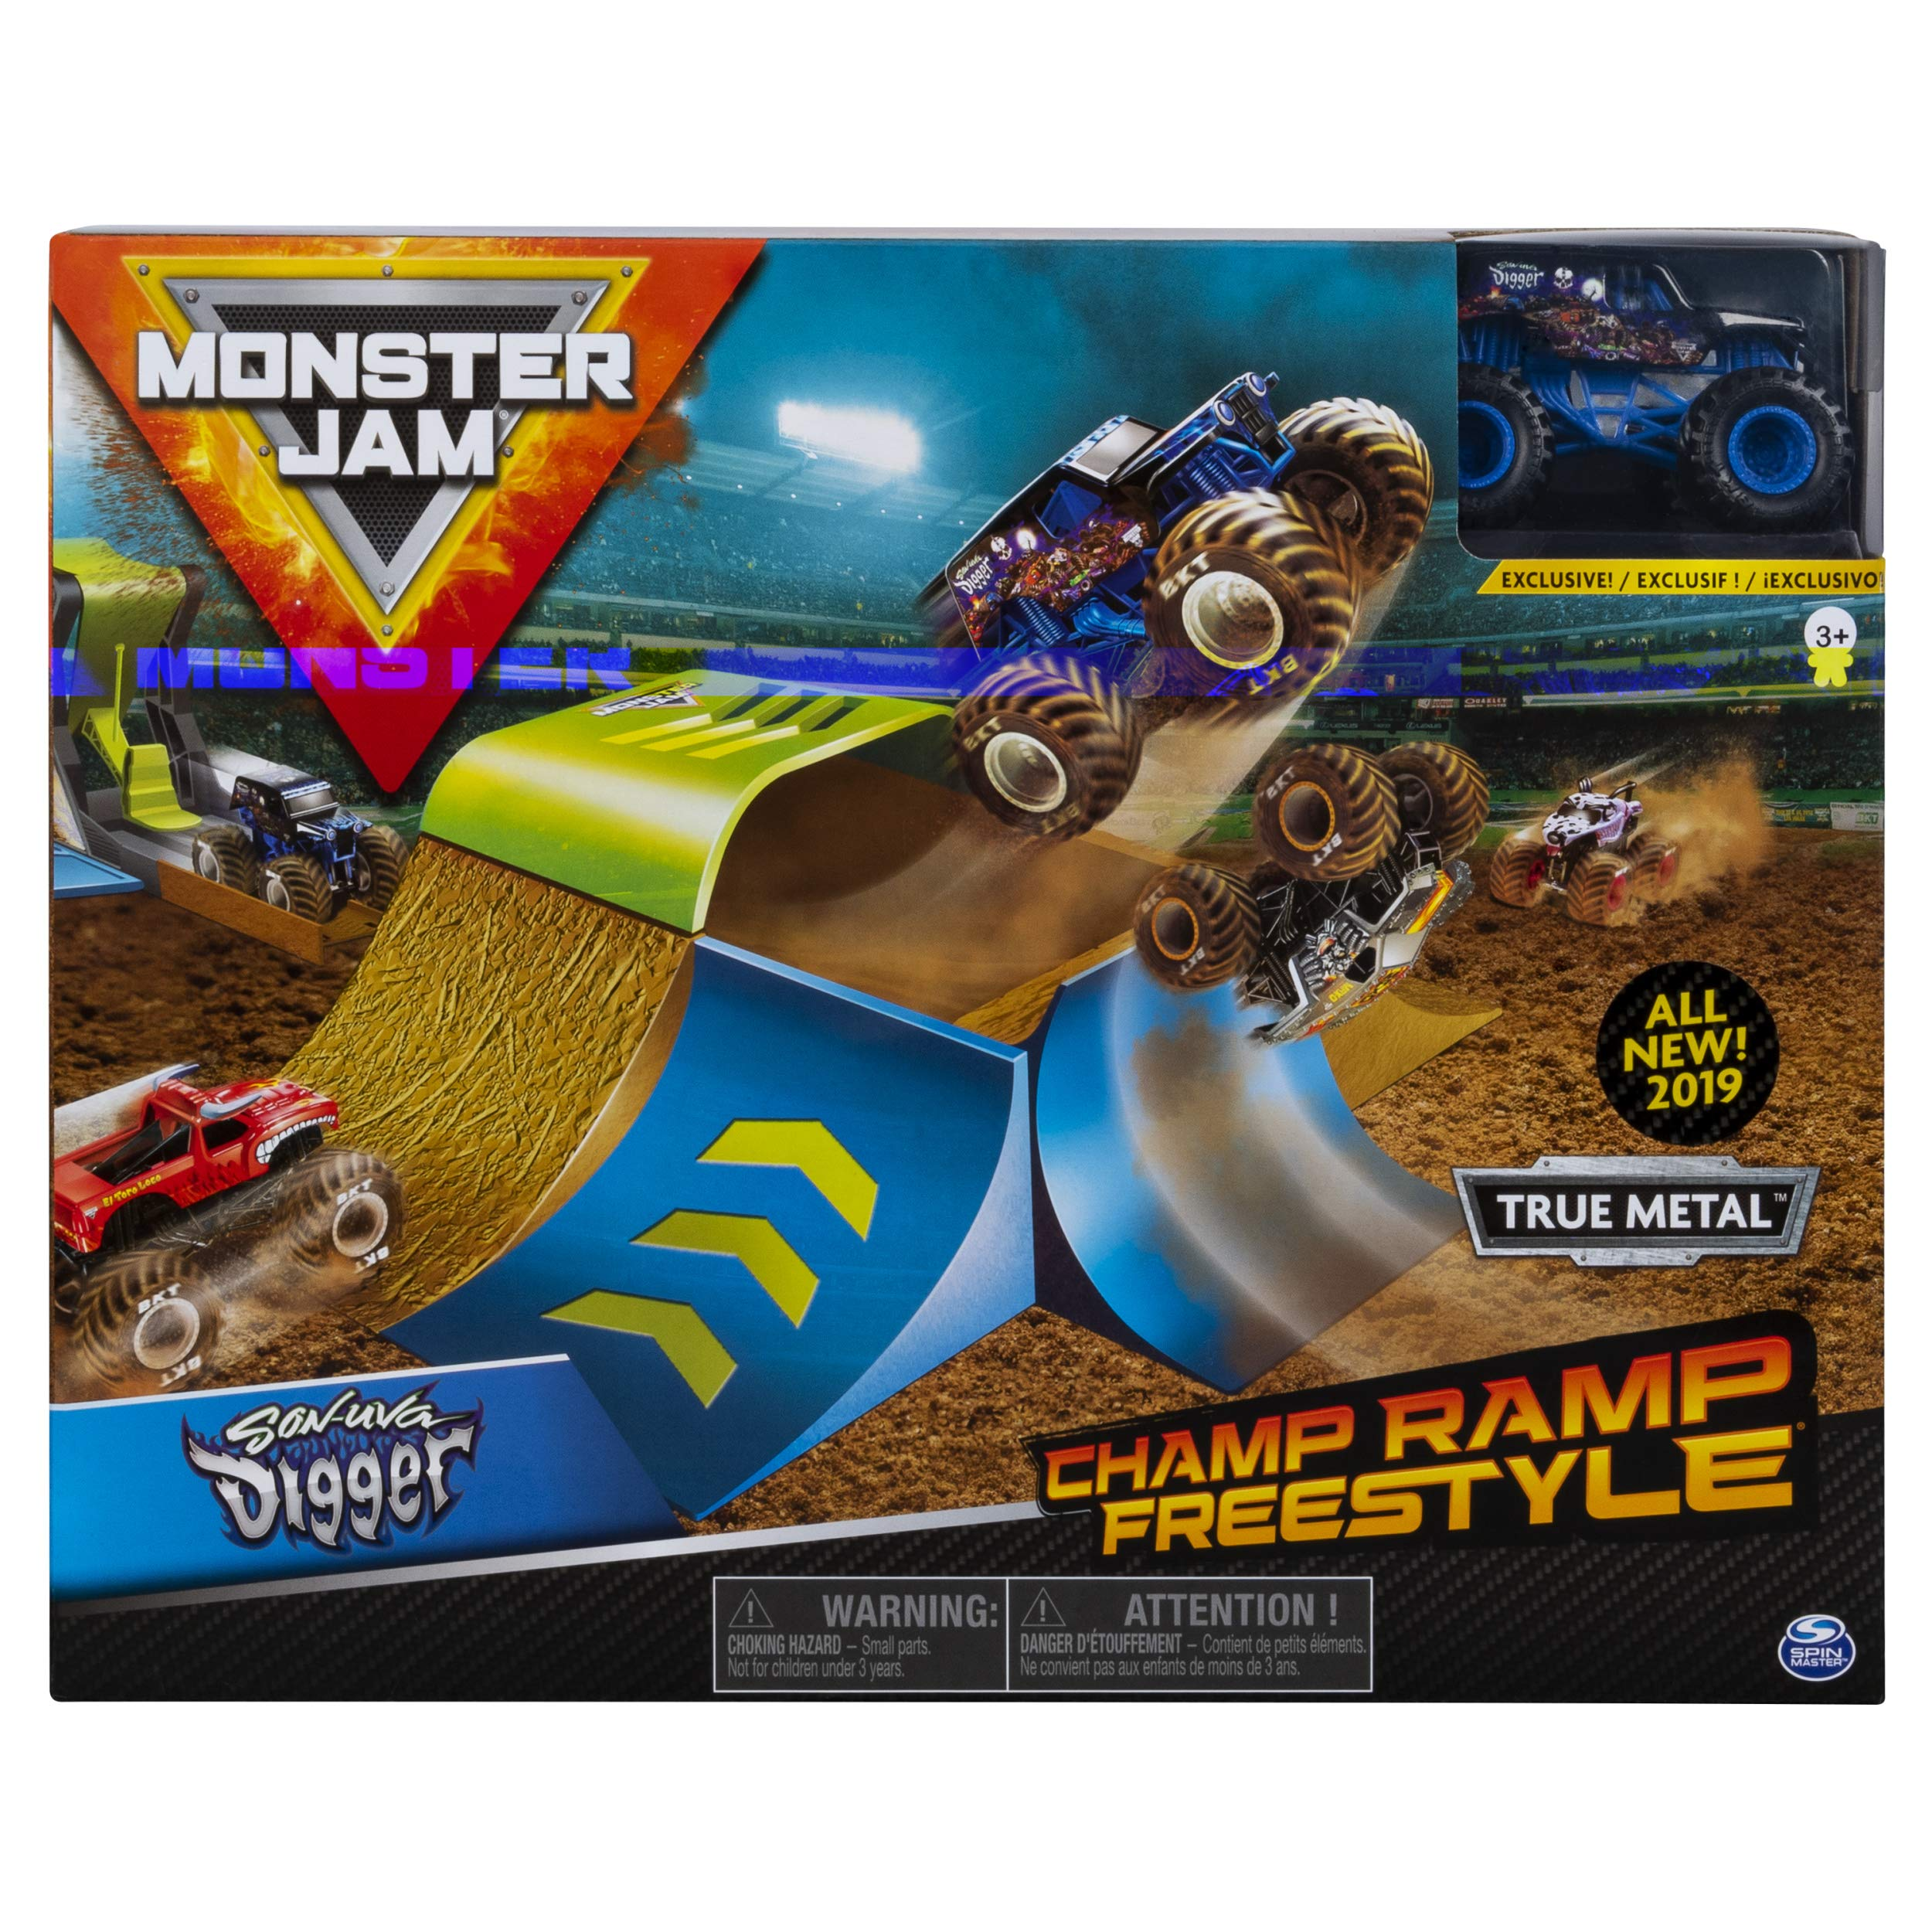 Monster Jam Official Champ Ramp Freestyle Playset Featuring Exclusive Son-uva Digger Monster Truck by Monster Jam